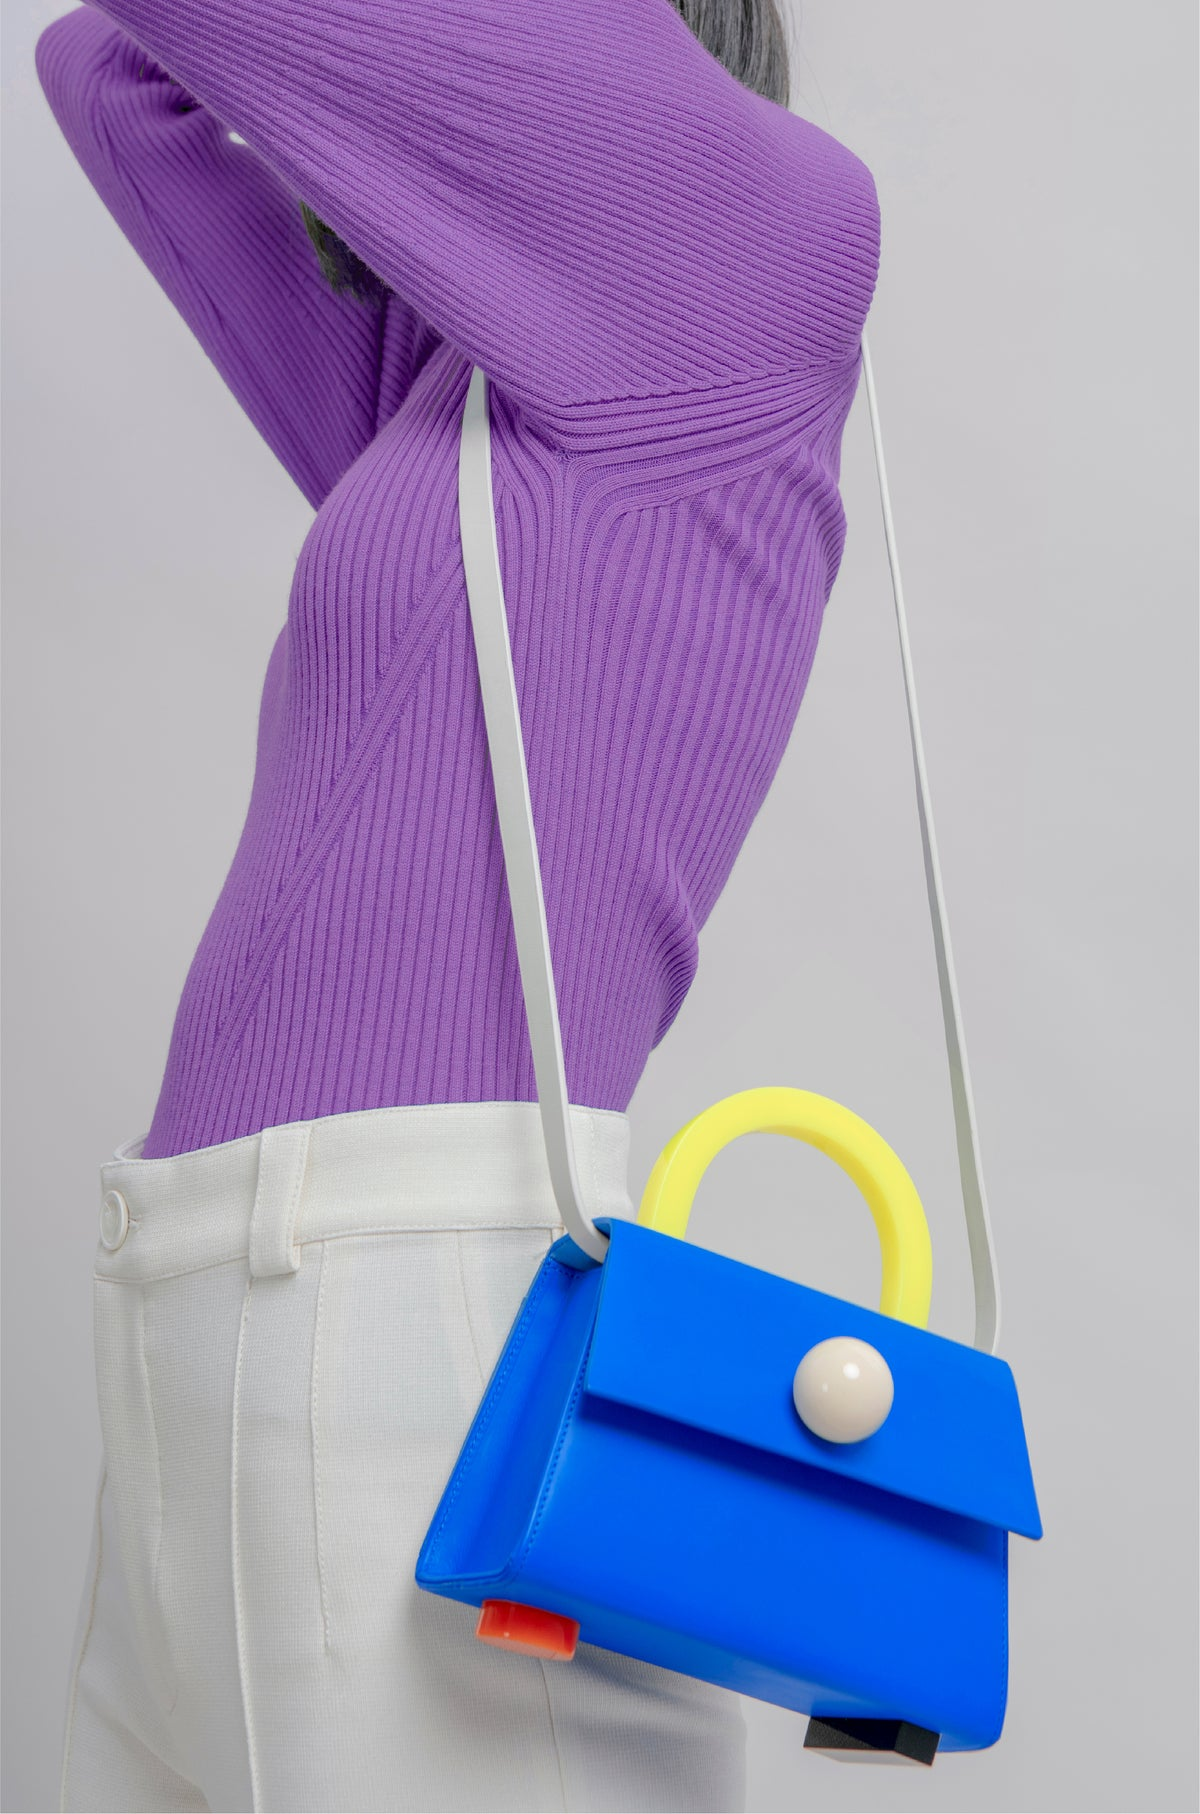 Image of Diva satchel bag • Ultramarine with strap - Limited quantities